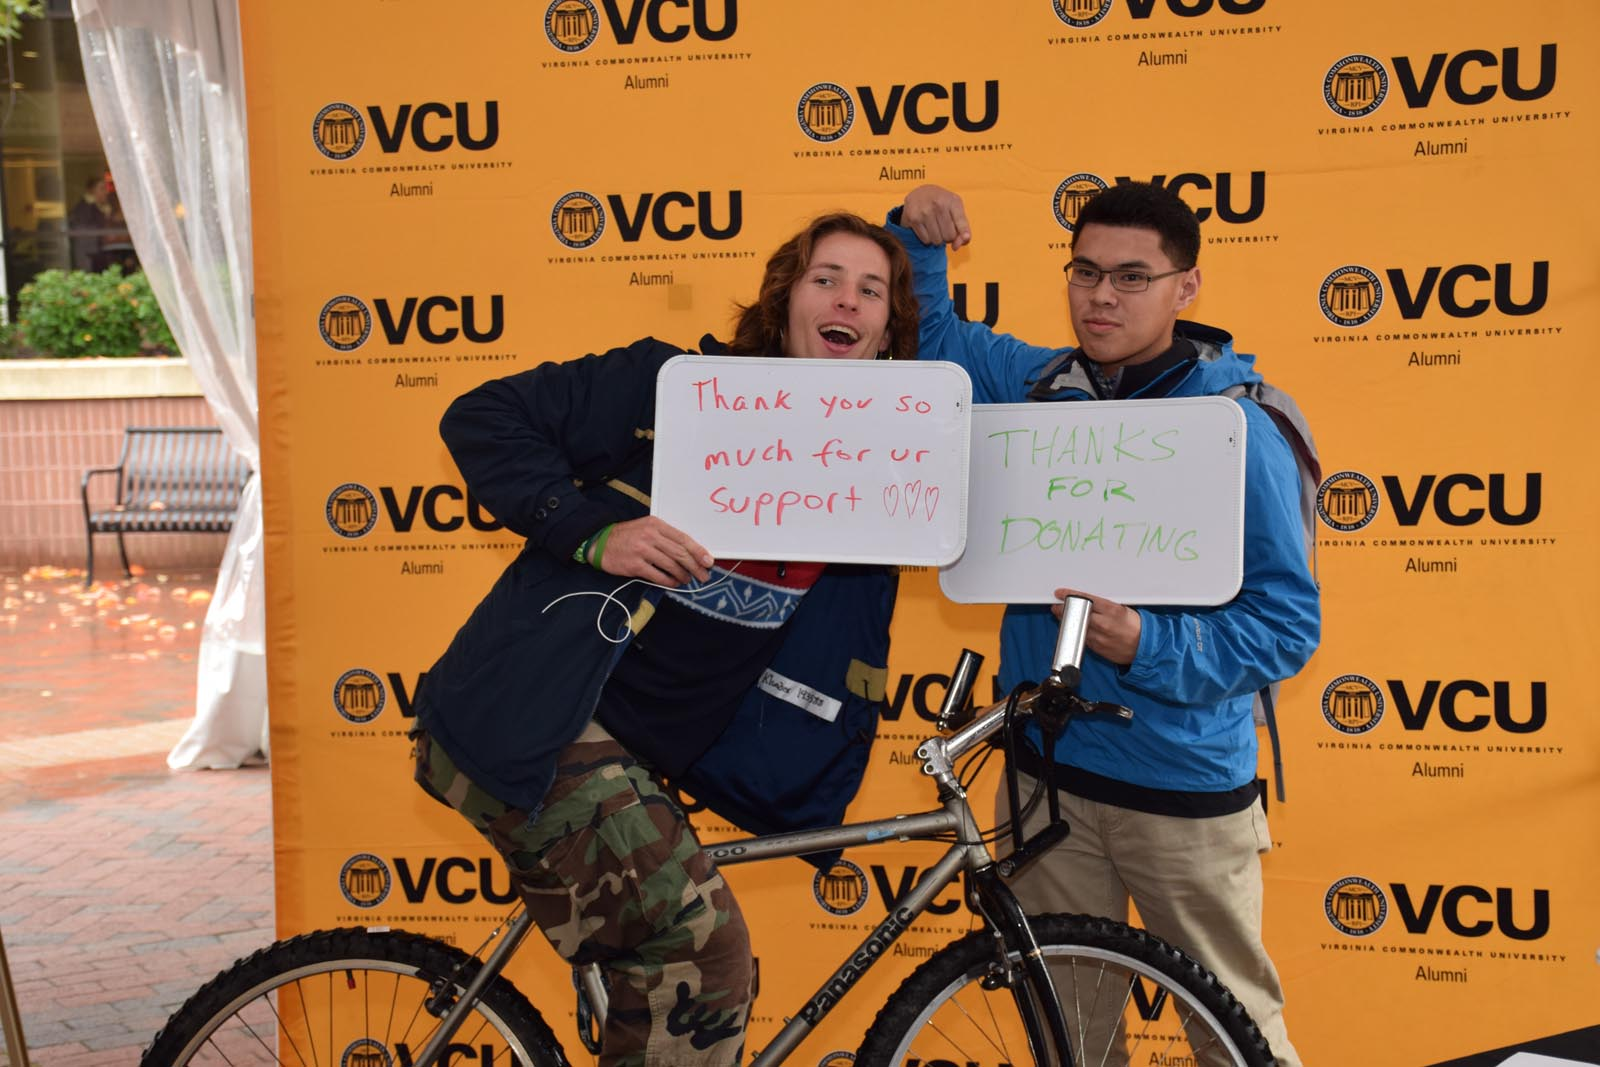 Students with bike and thank you signs